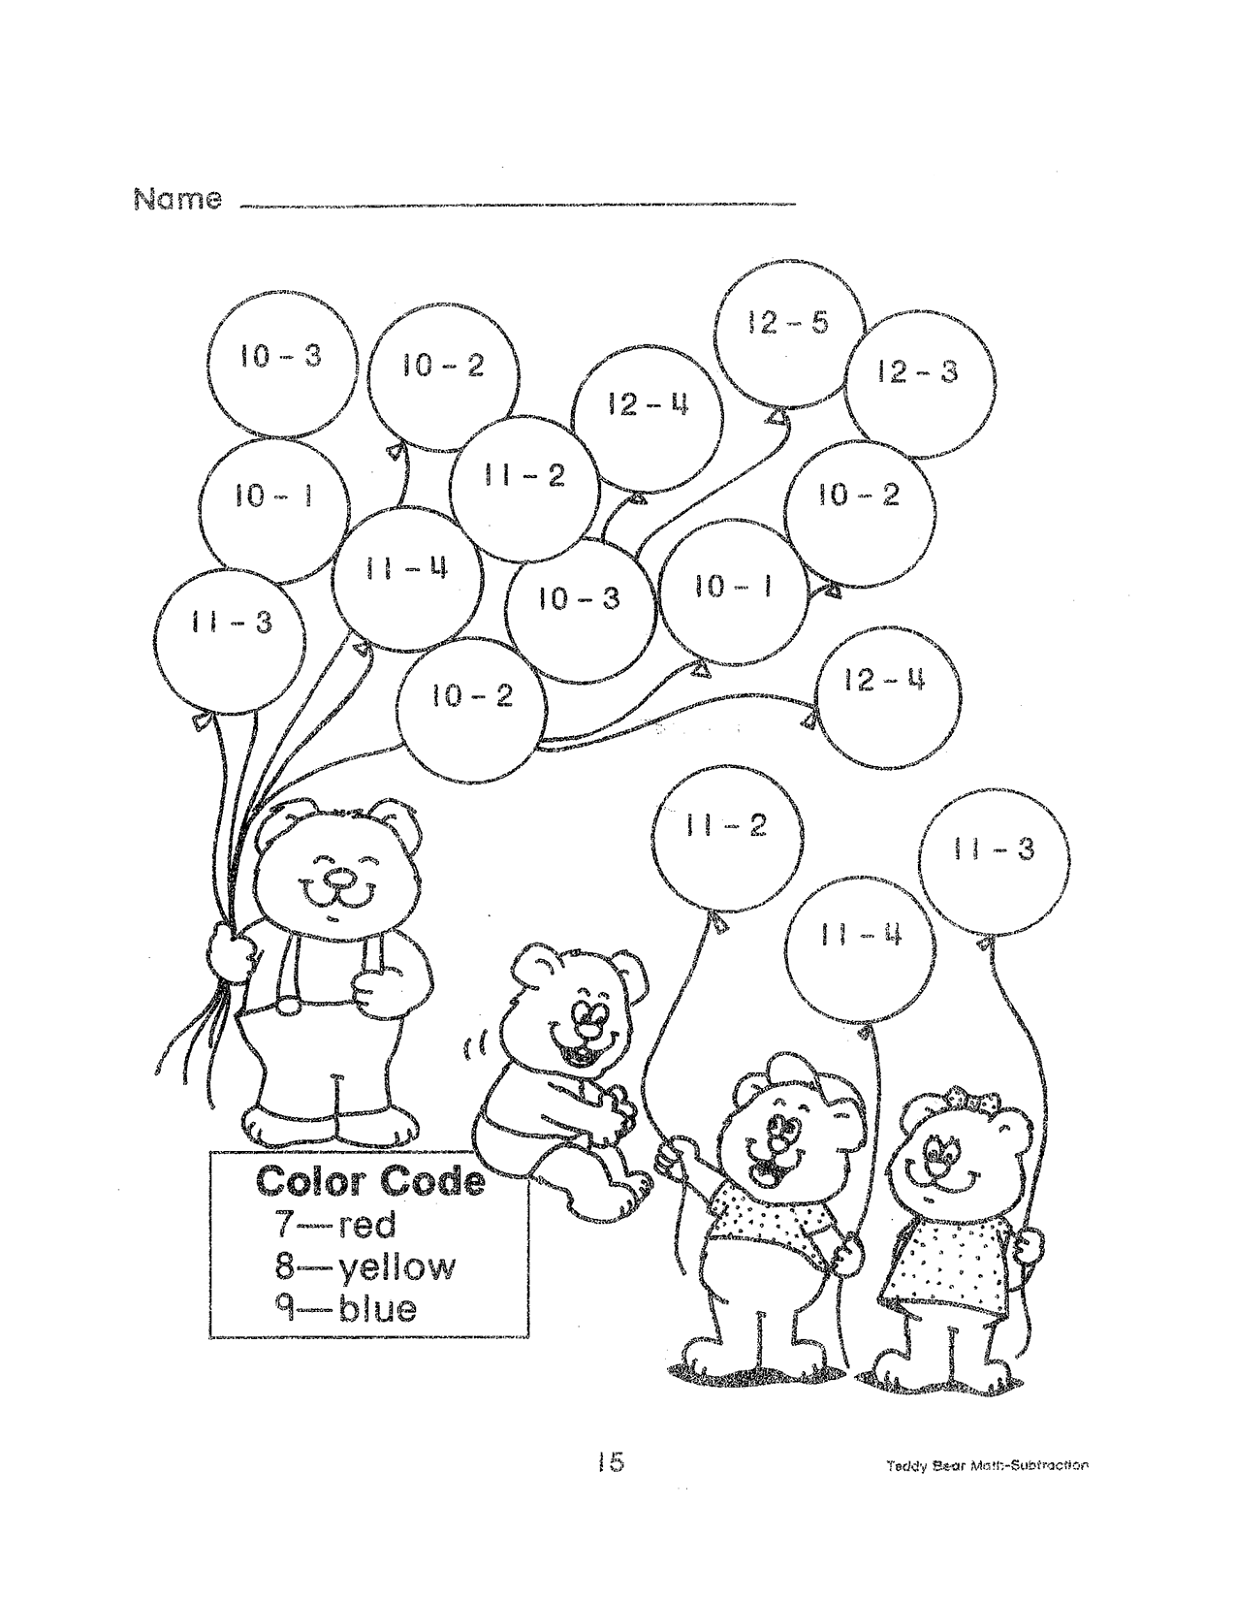 Fun Math Worksheets To Print Activity Shelter, Online Worksheets